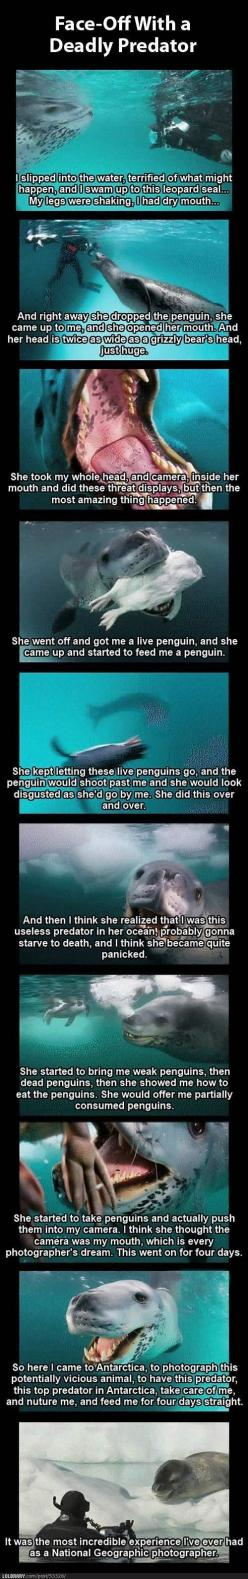 National Geographic Photographer Faces Off with a Deadly Ocean Predator, Makes New Best Friend: Leopard Seals, Face Off, Deadly Leopard, Geographic Photographer, National Geographic, Dream Job, Deadly Predator, Animal